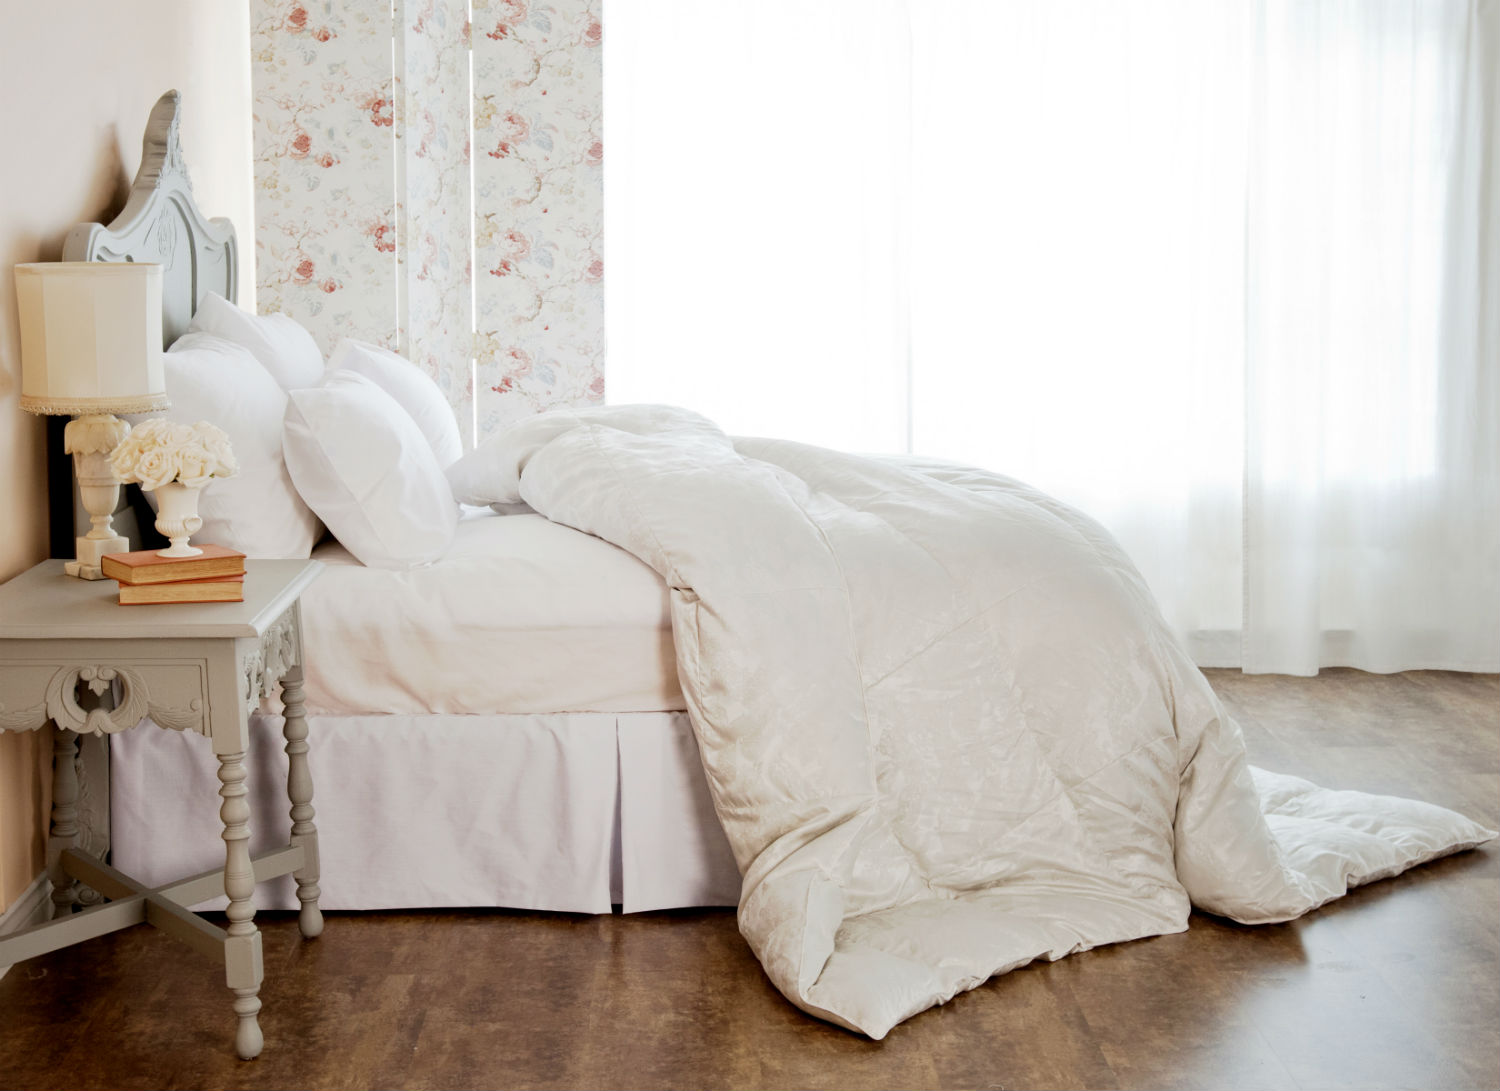 Genuine Eiderdown With Silk Cover Duvet/Down Comforter & Pillows by St. Geneve Luxury Bedding